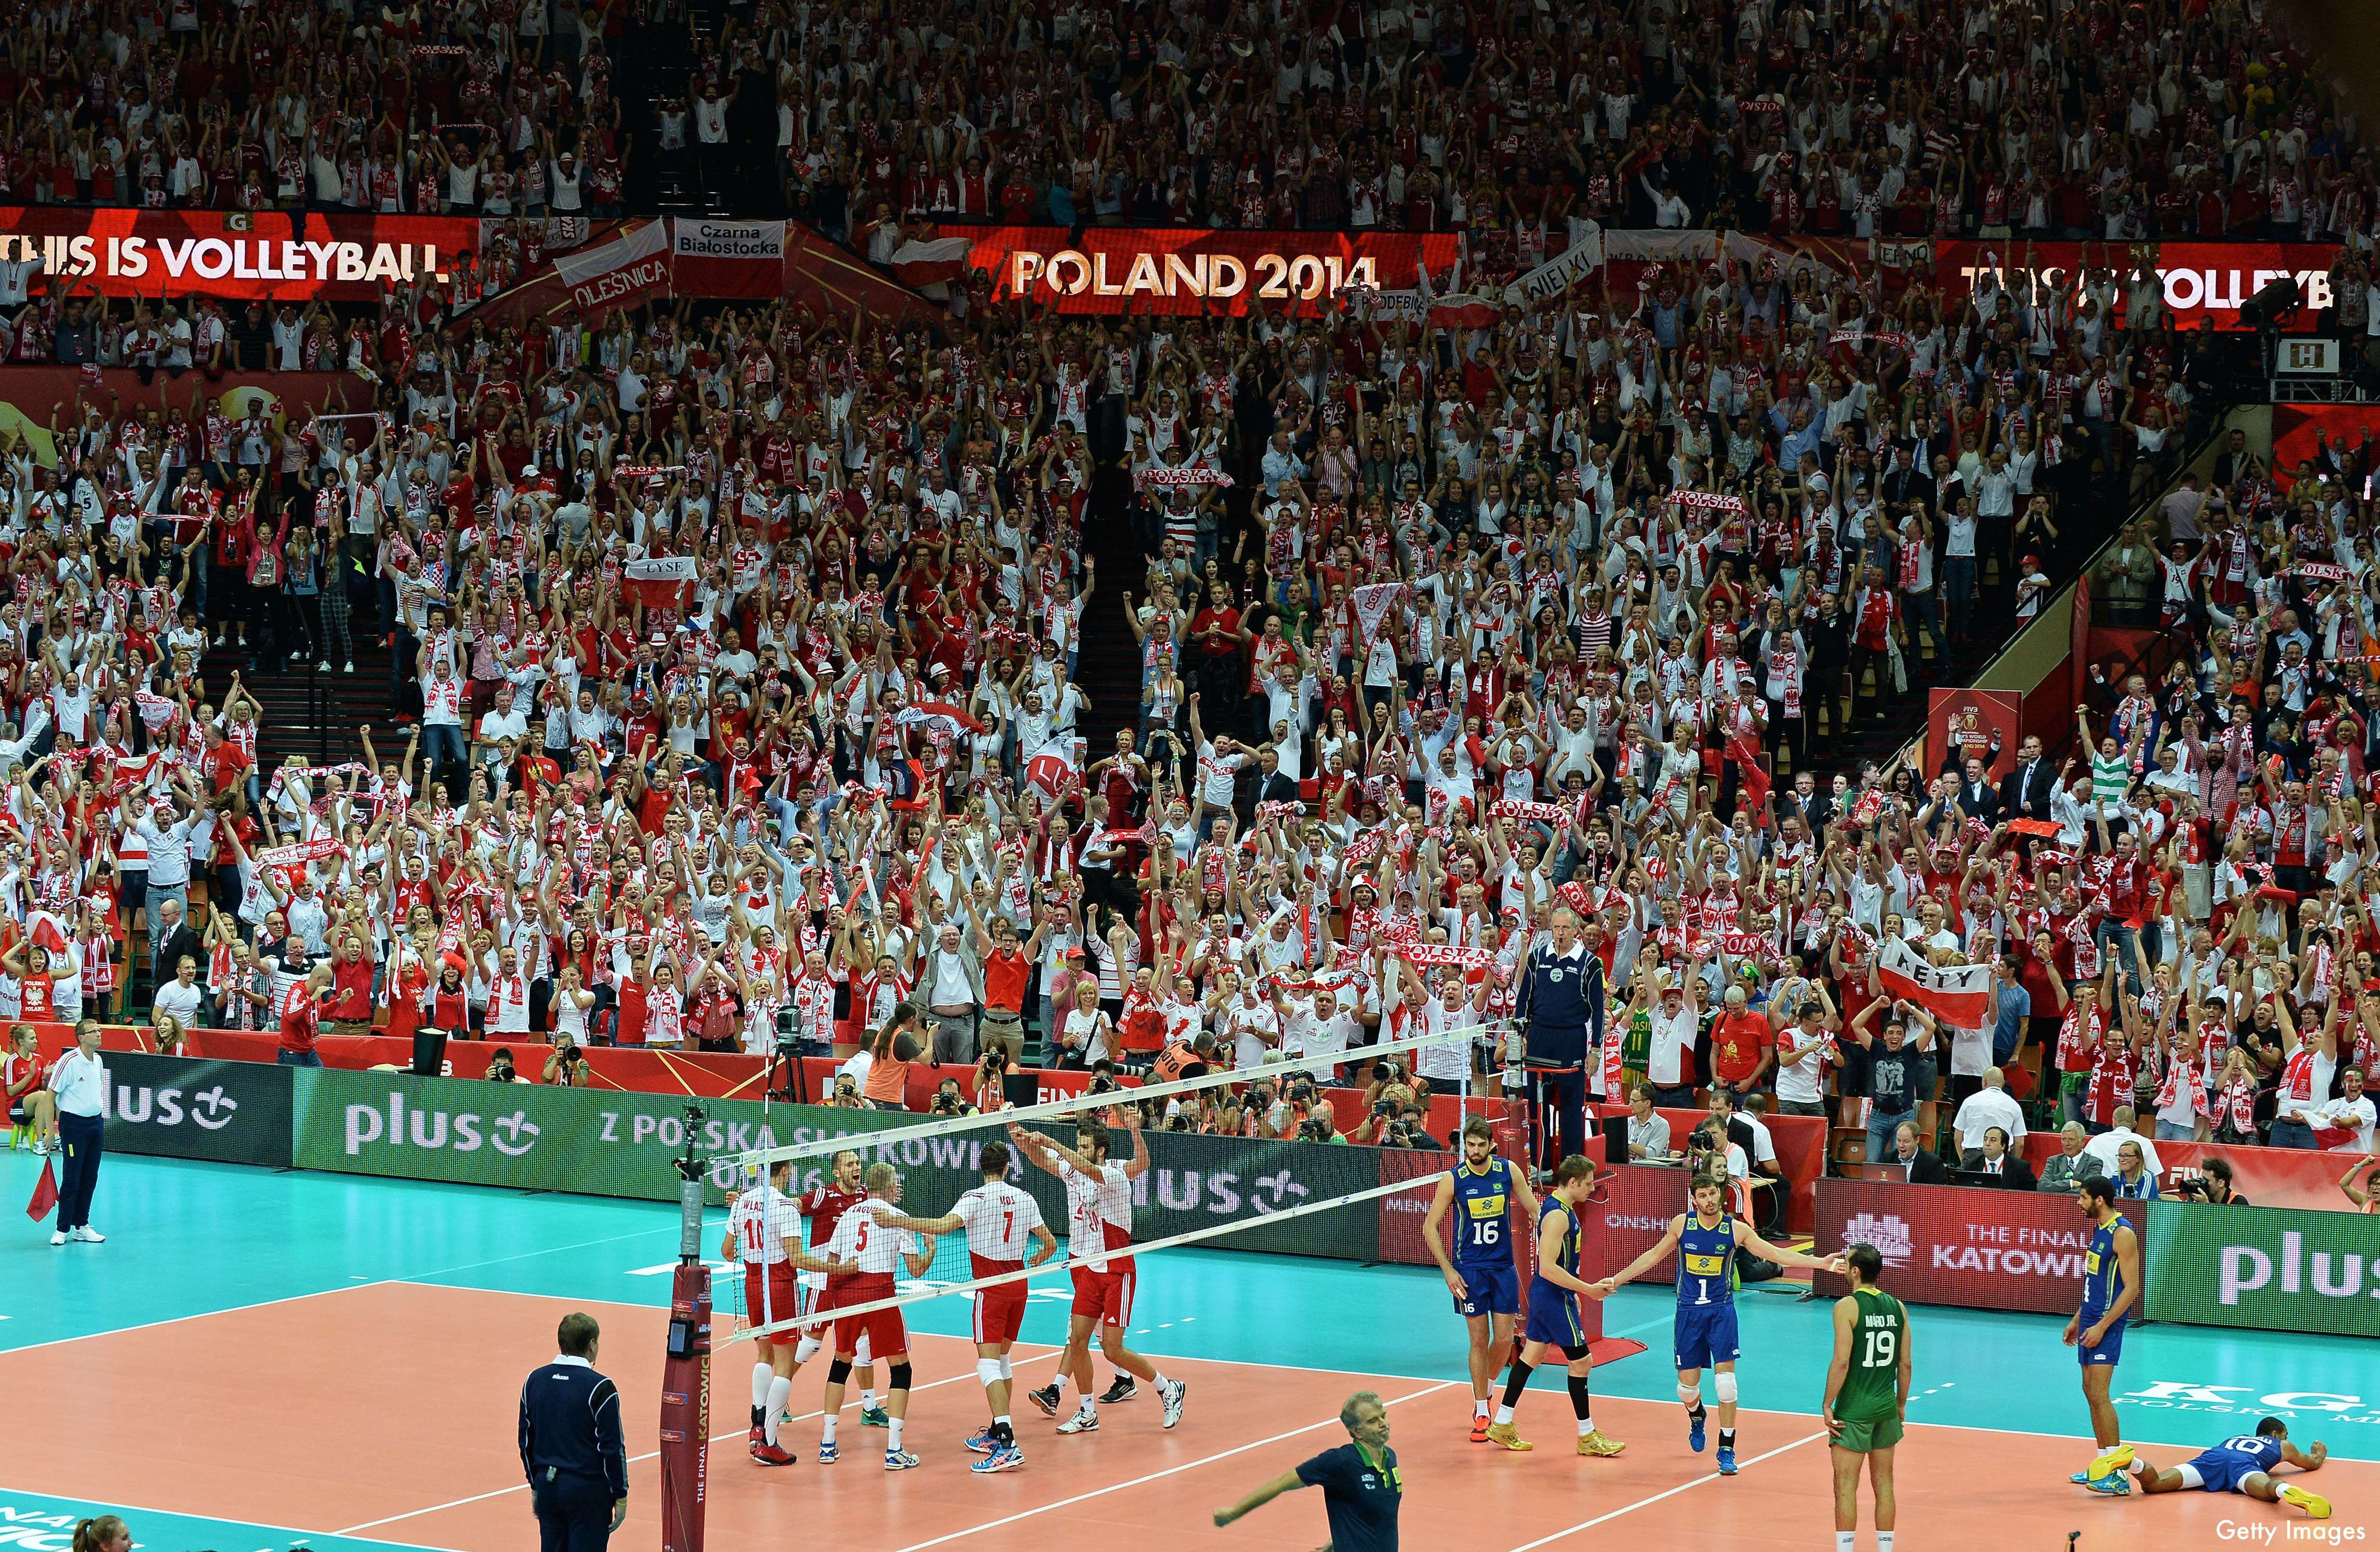 This Video Of Poland Winning The World Volleyball Championship Is The Best Clip You Ll See This Week Poland Volleyball Brazil Olympics